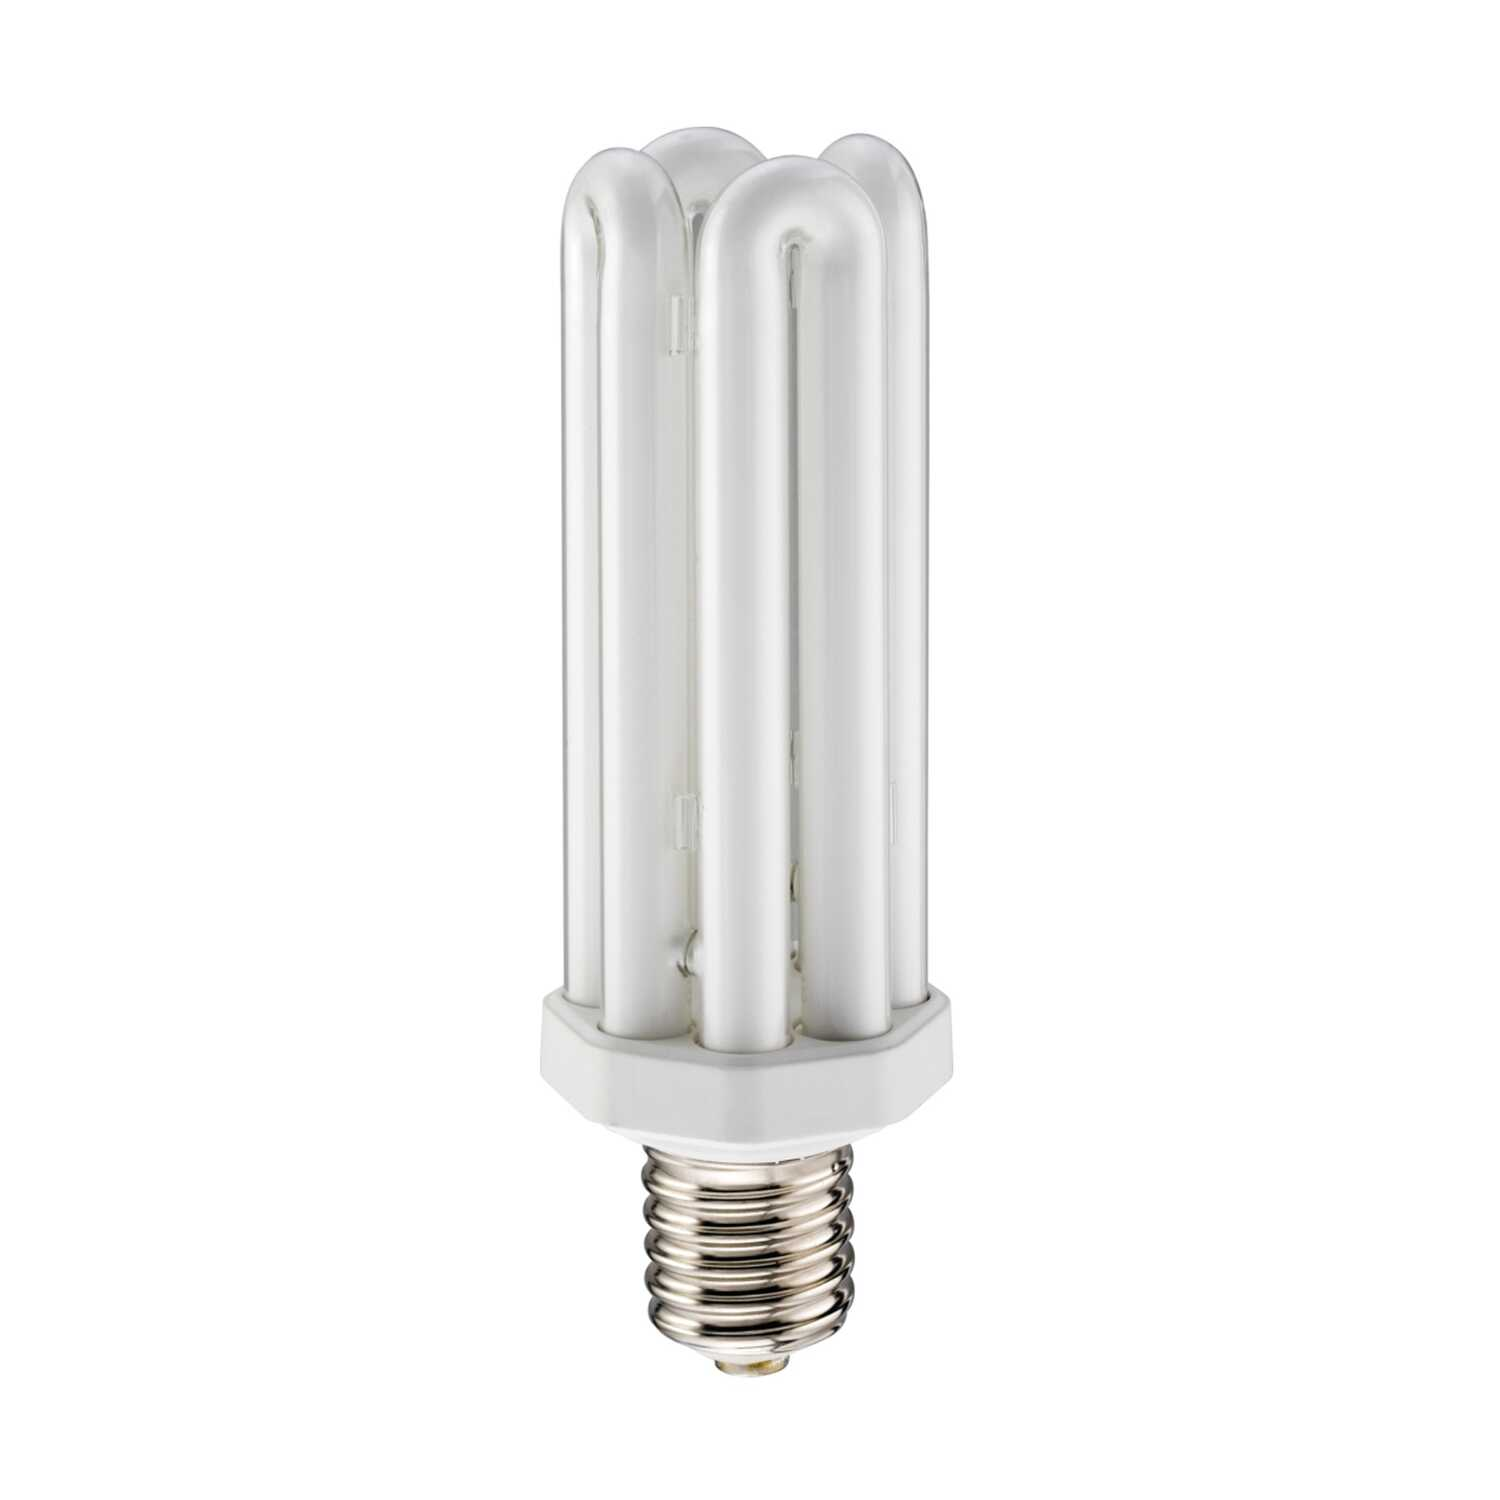 Lithonia Lighting  65 watts Tubular  9.8 in. L CFL Bulb  Cool White  Specialty  3900 lumens 1 pk